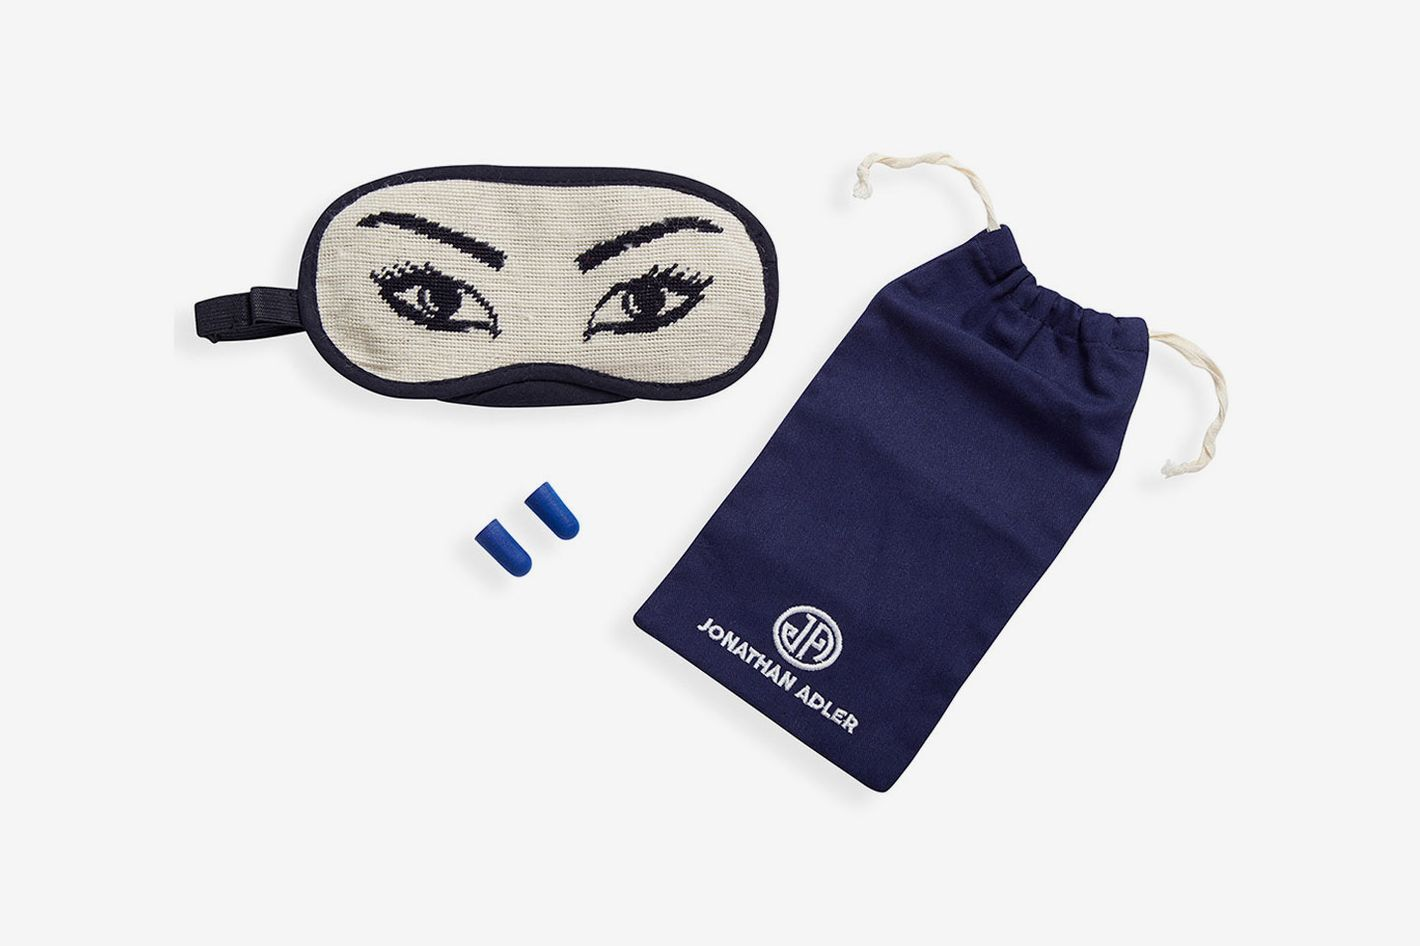 Jonathan Adler Jet Set Travel Kit